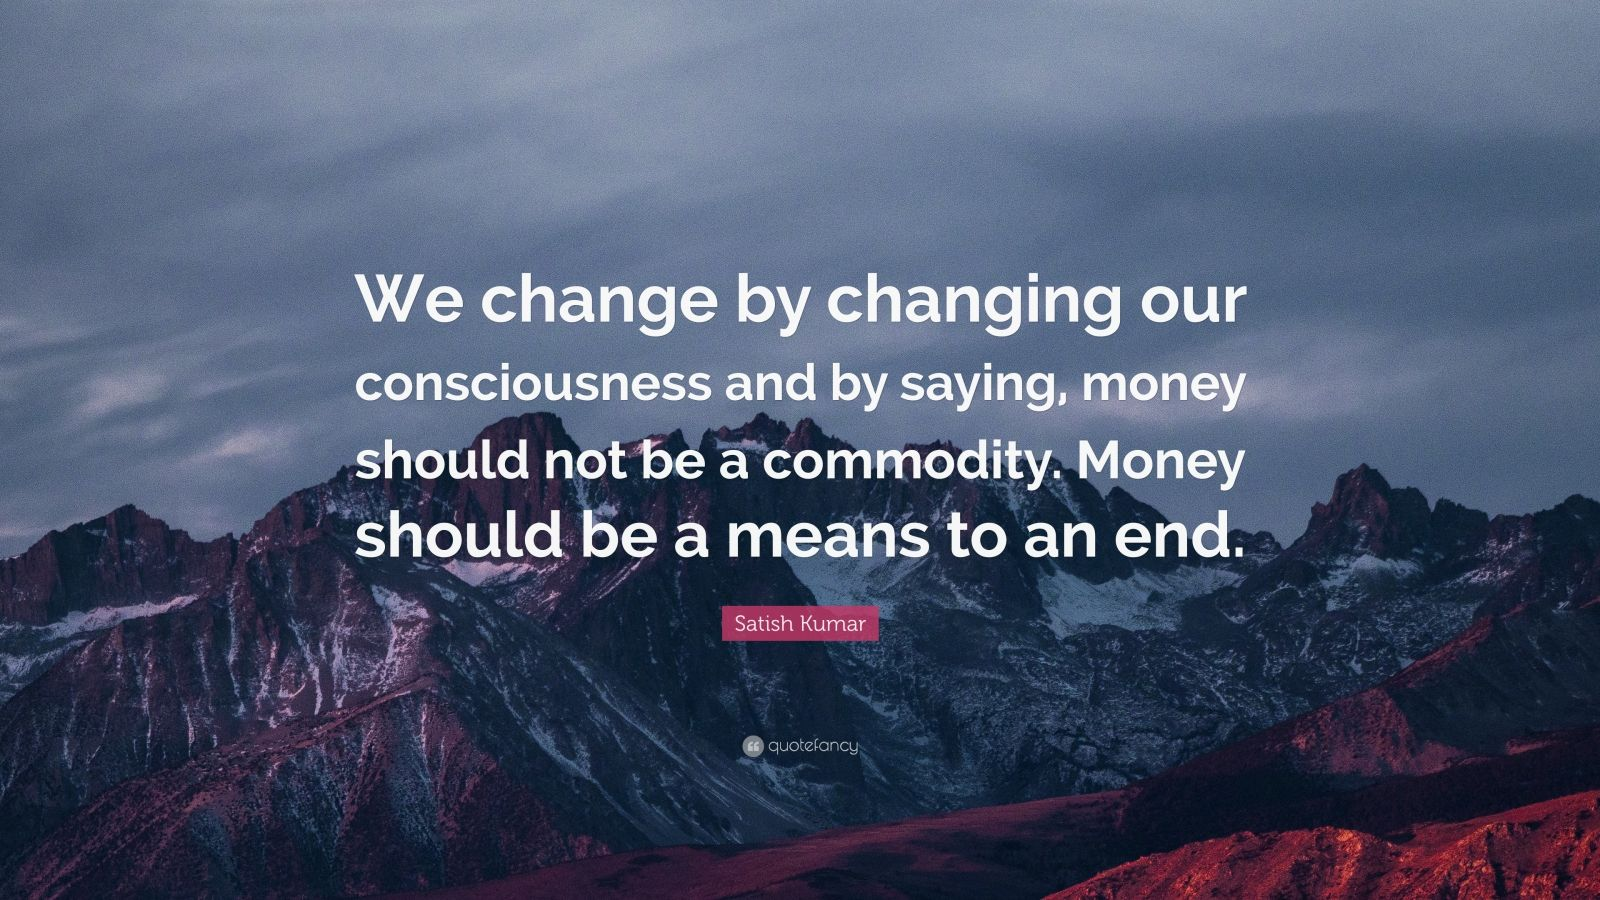 """Satish Kumar Quote: """"We change by changing our consciousness and by saying, money should not be a commodity. Money should be a means to an end."""""""